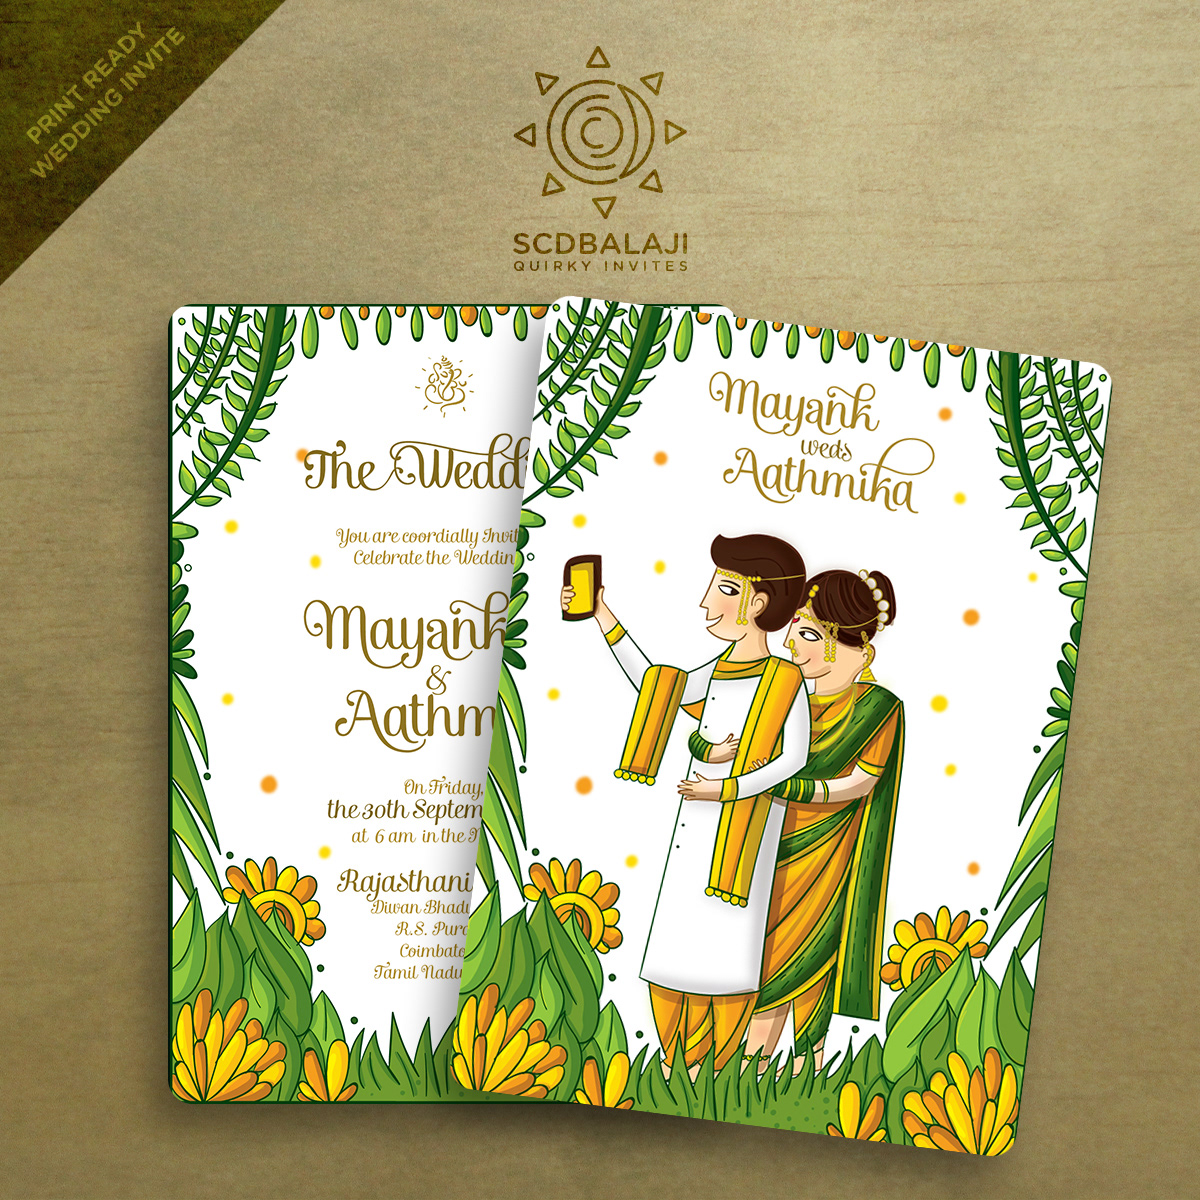 Quirky creative indian wedding invitations maharashtrian wedding quirky creative indian wedding invitations maharashtrian wedding invitation stopboris Image collections